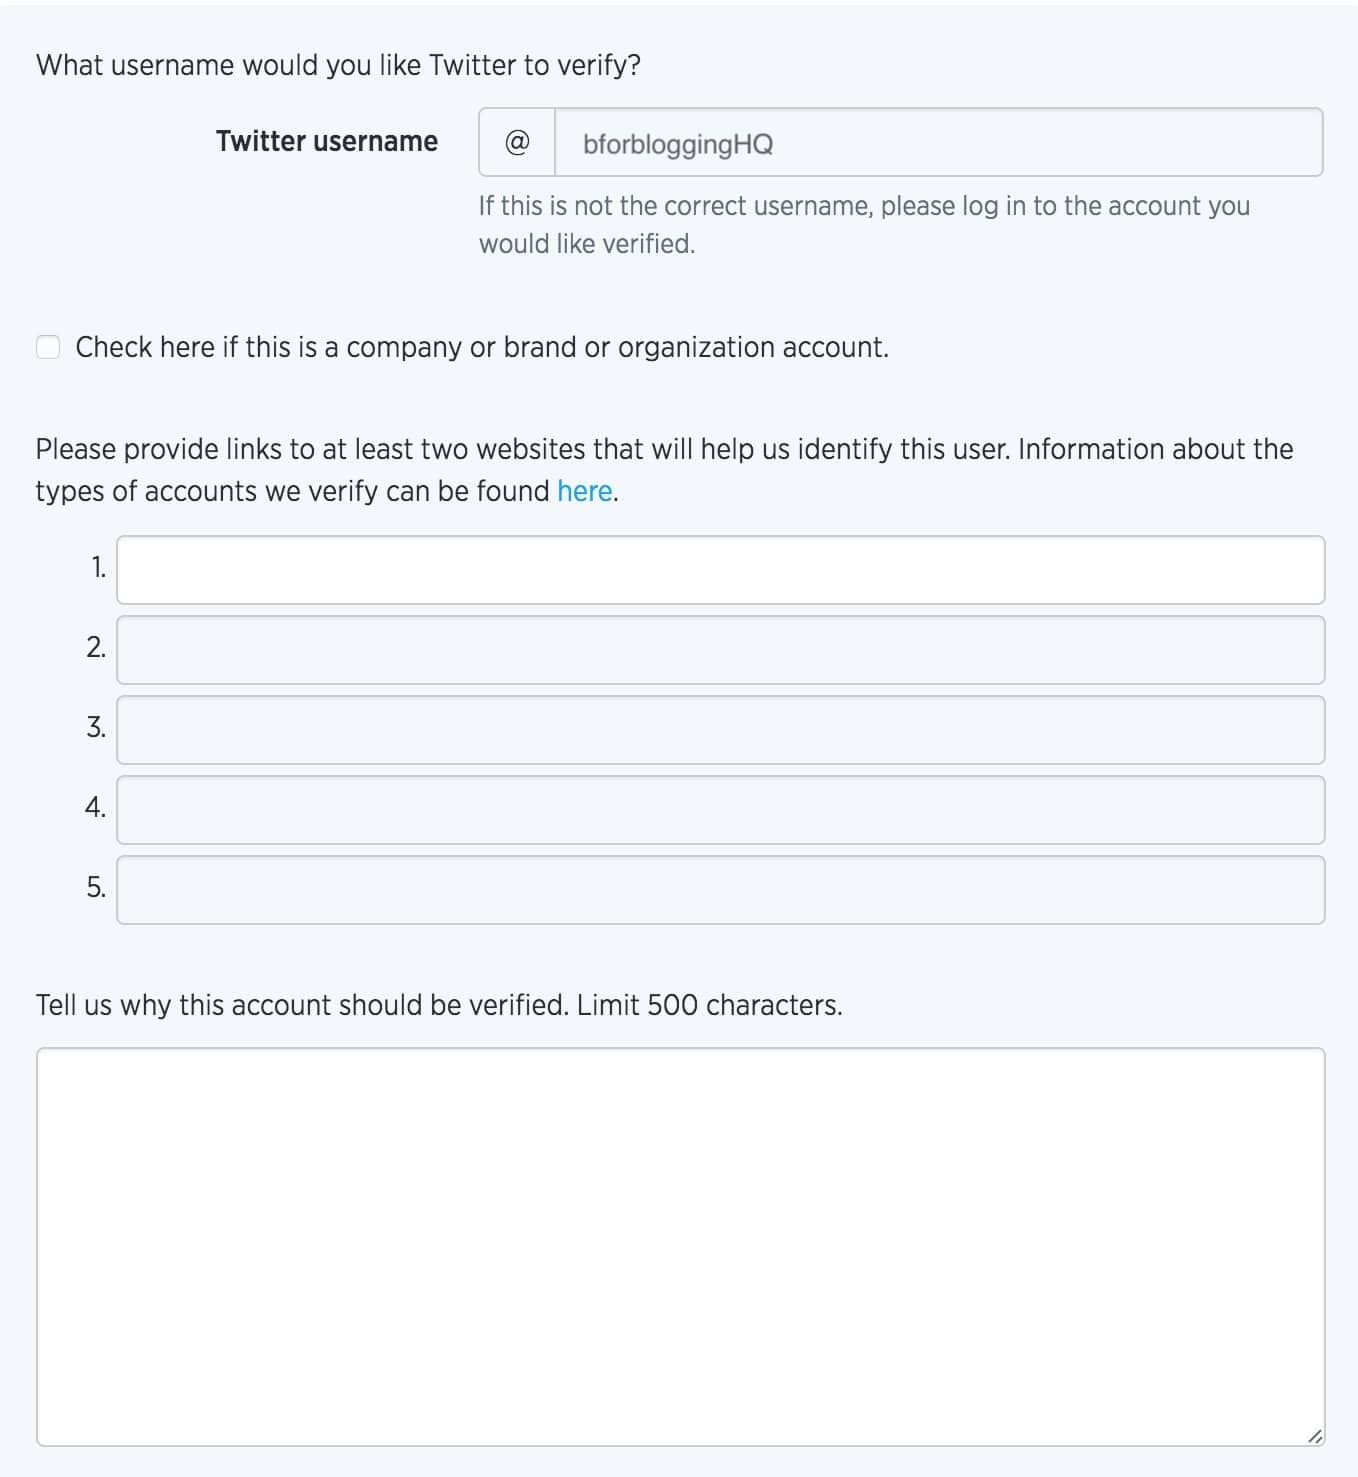 Application Form for Twitter Account Verification